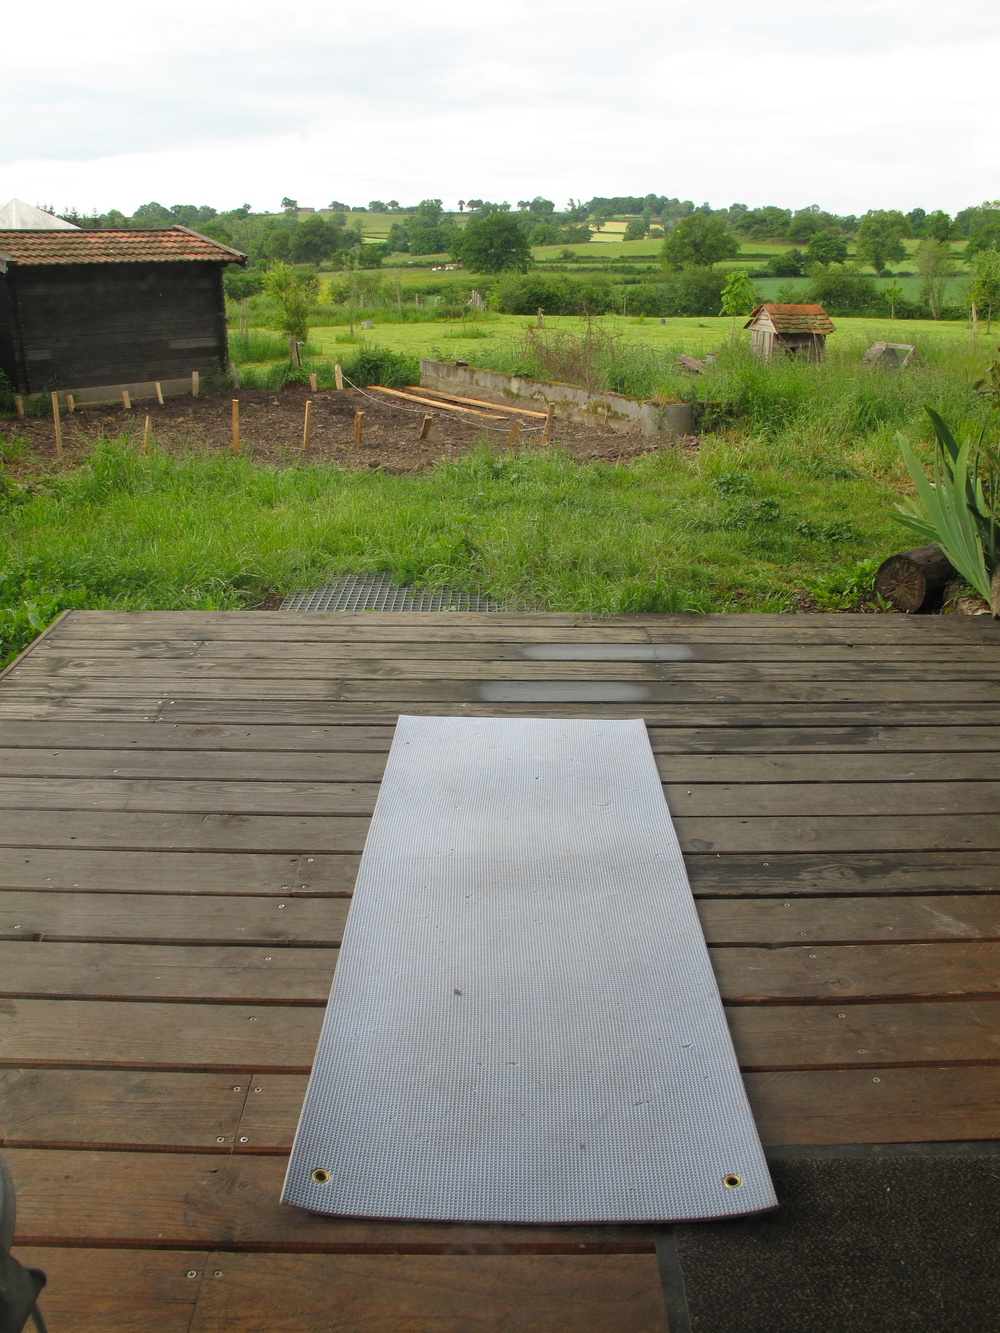 Yoga on the porch of my tiny log cabin, in the beautiful morning of Brenazet, France